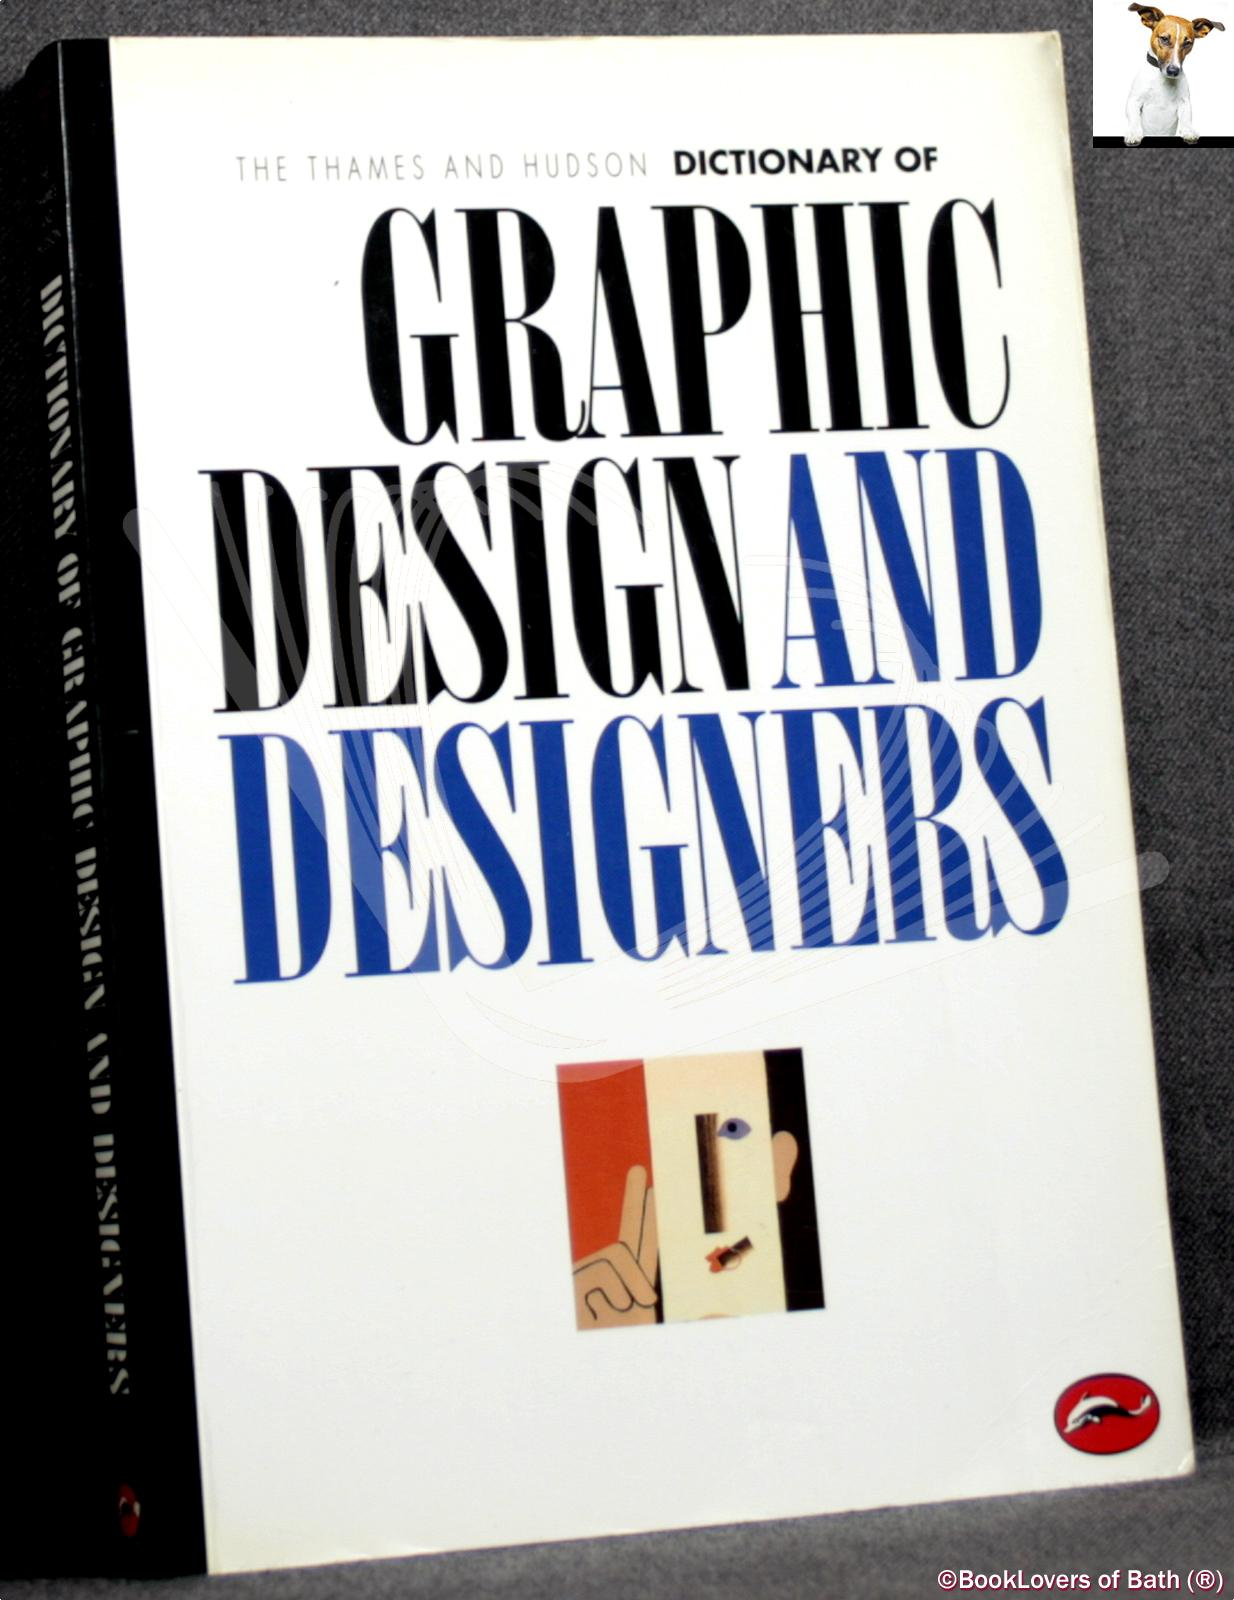 The Thames and Hudson Encyclopaedia of Graphic Design and Designers  - Alan Livingston & Isabella Livingston